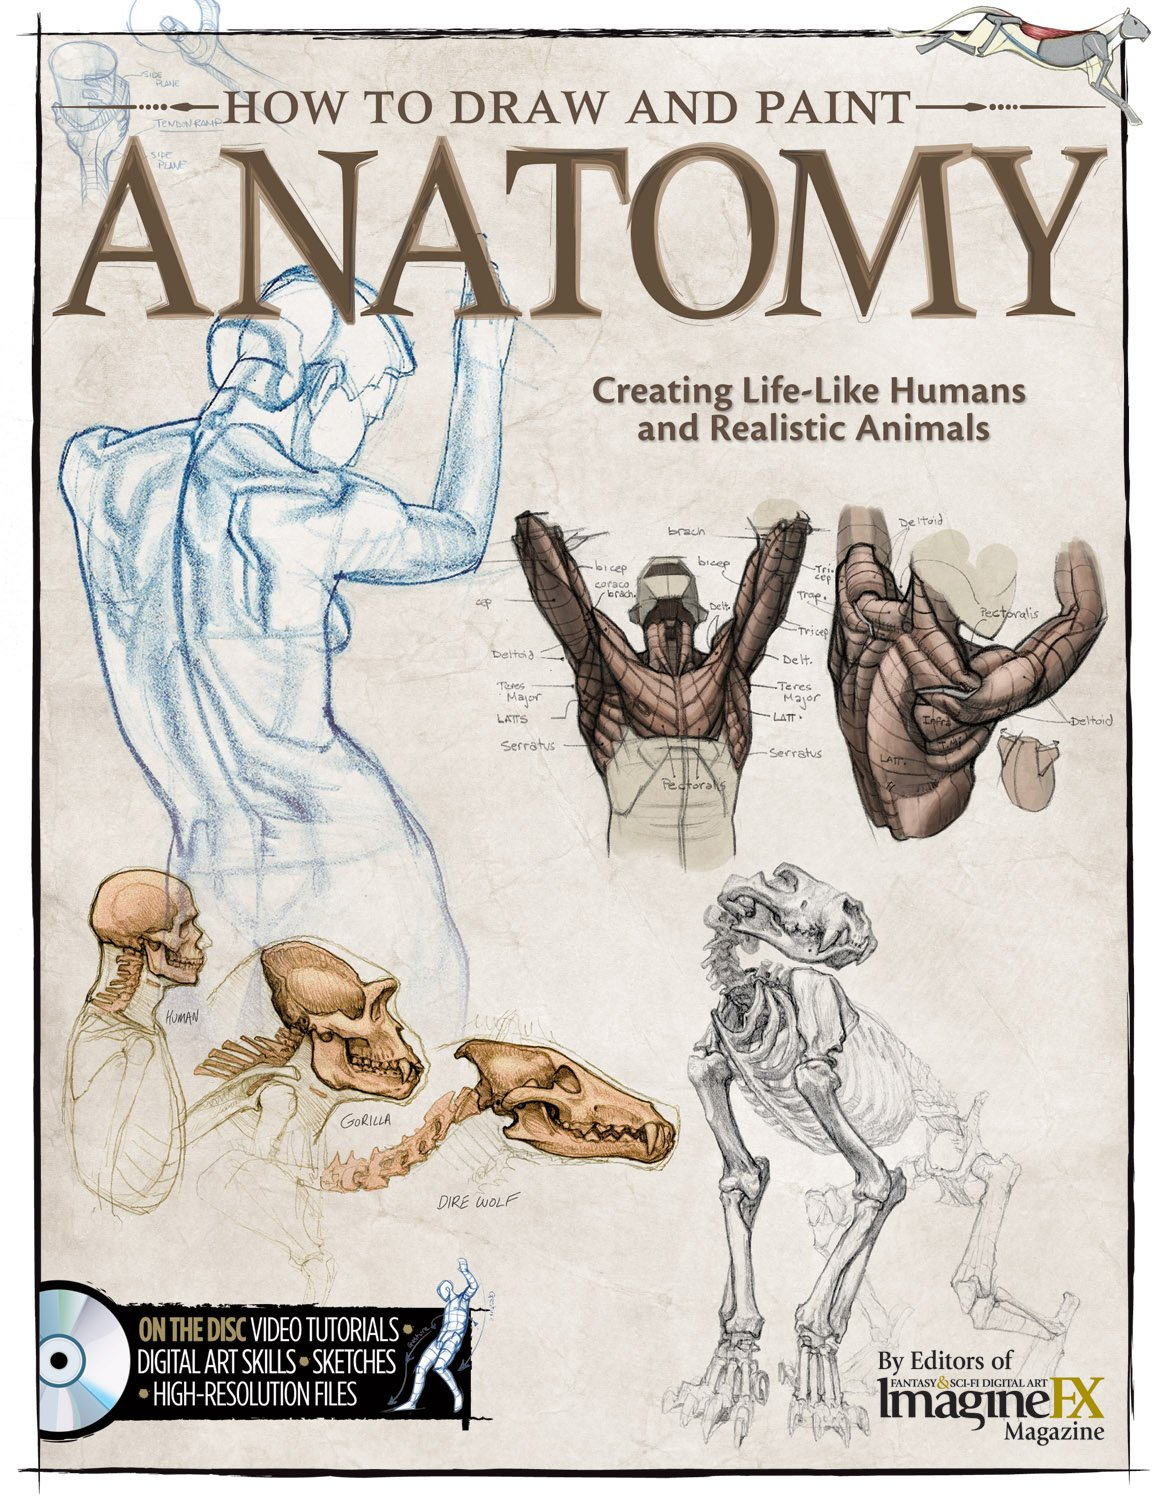 How to Draw and Paint Anatomy: Creating Life-Like Humans and Realistic Animals pdf